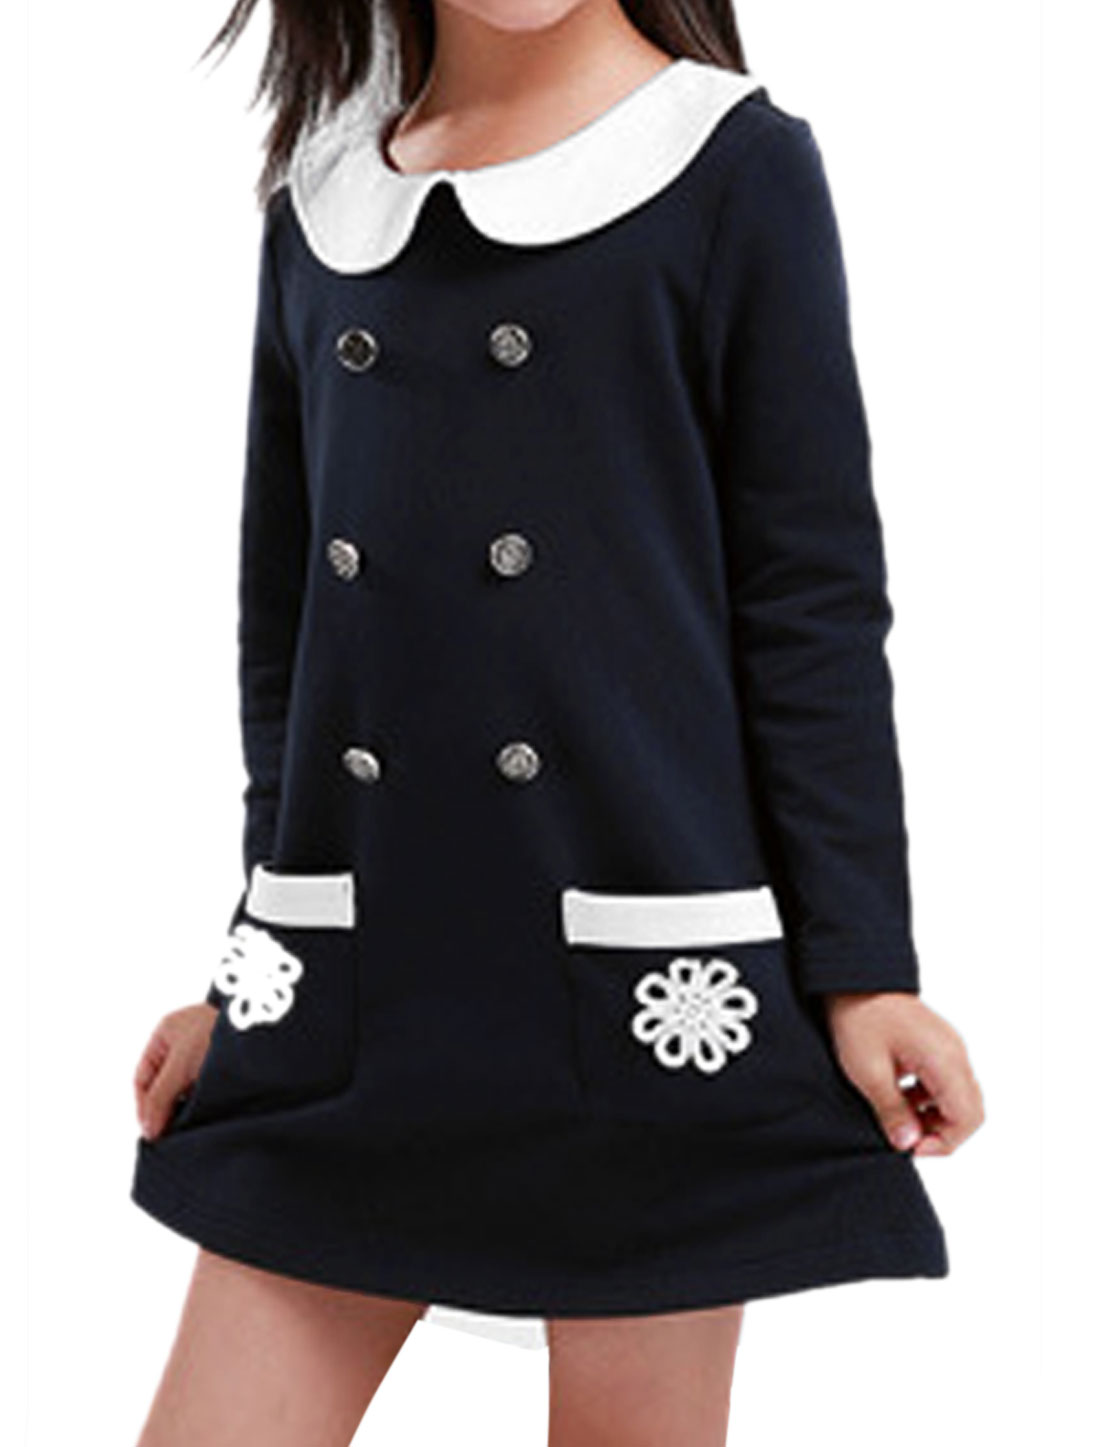 Girl Chic Peter Pan Collar Long Sleeved Dark Blue Spring Dress 4T